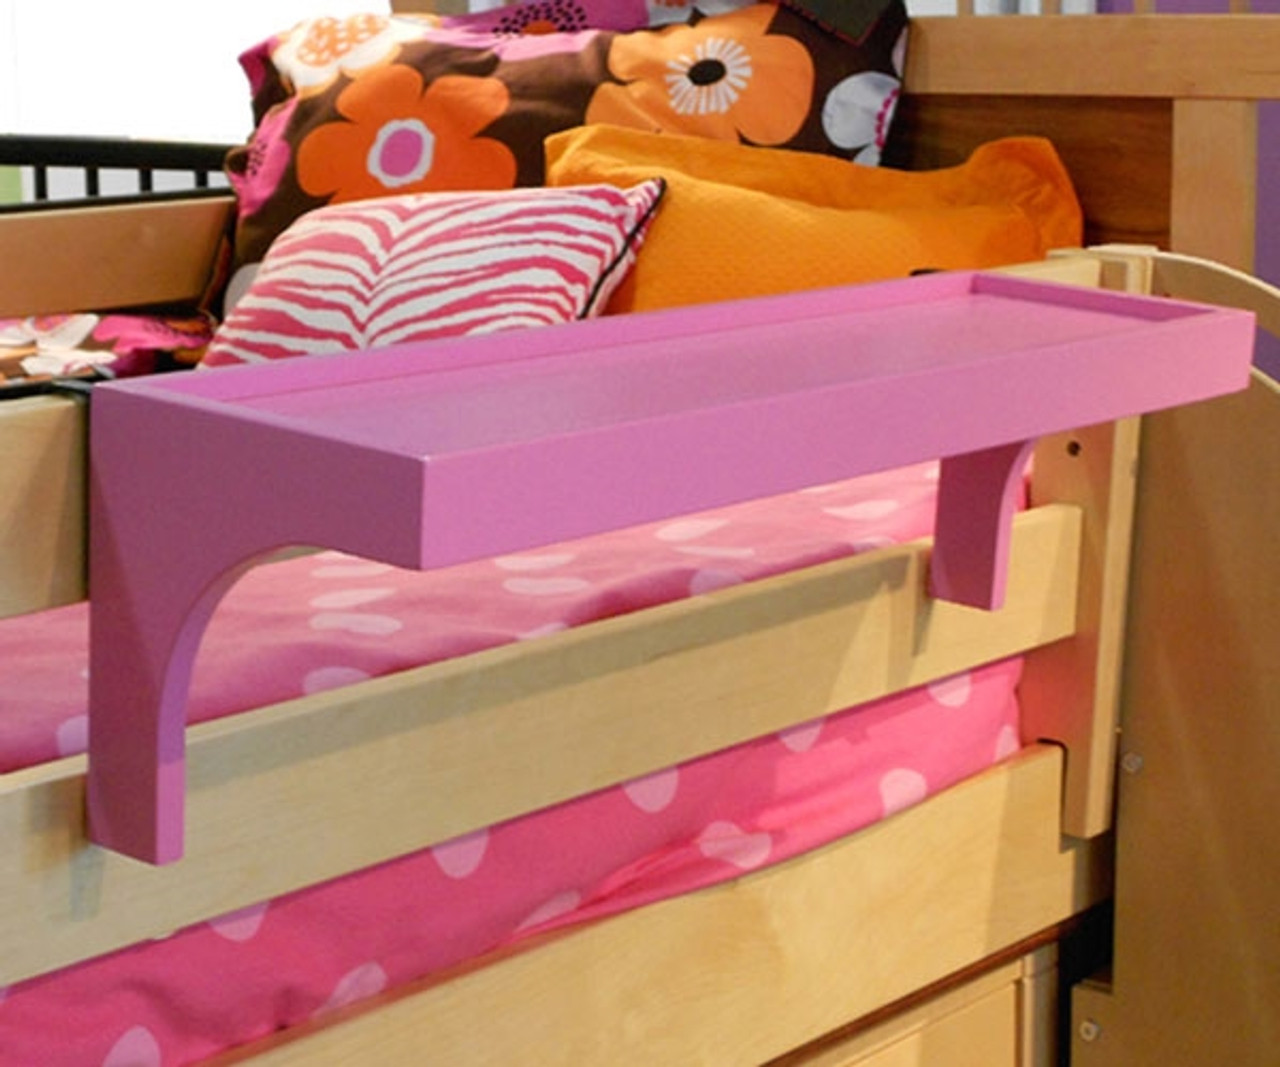 Bunk Bed Shelf Bedside Tray Bed Accessories For Kids And Teens